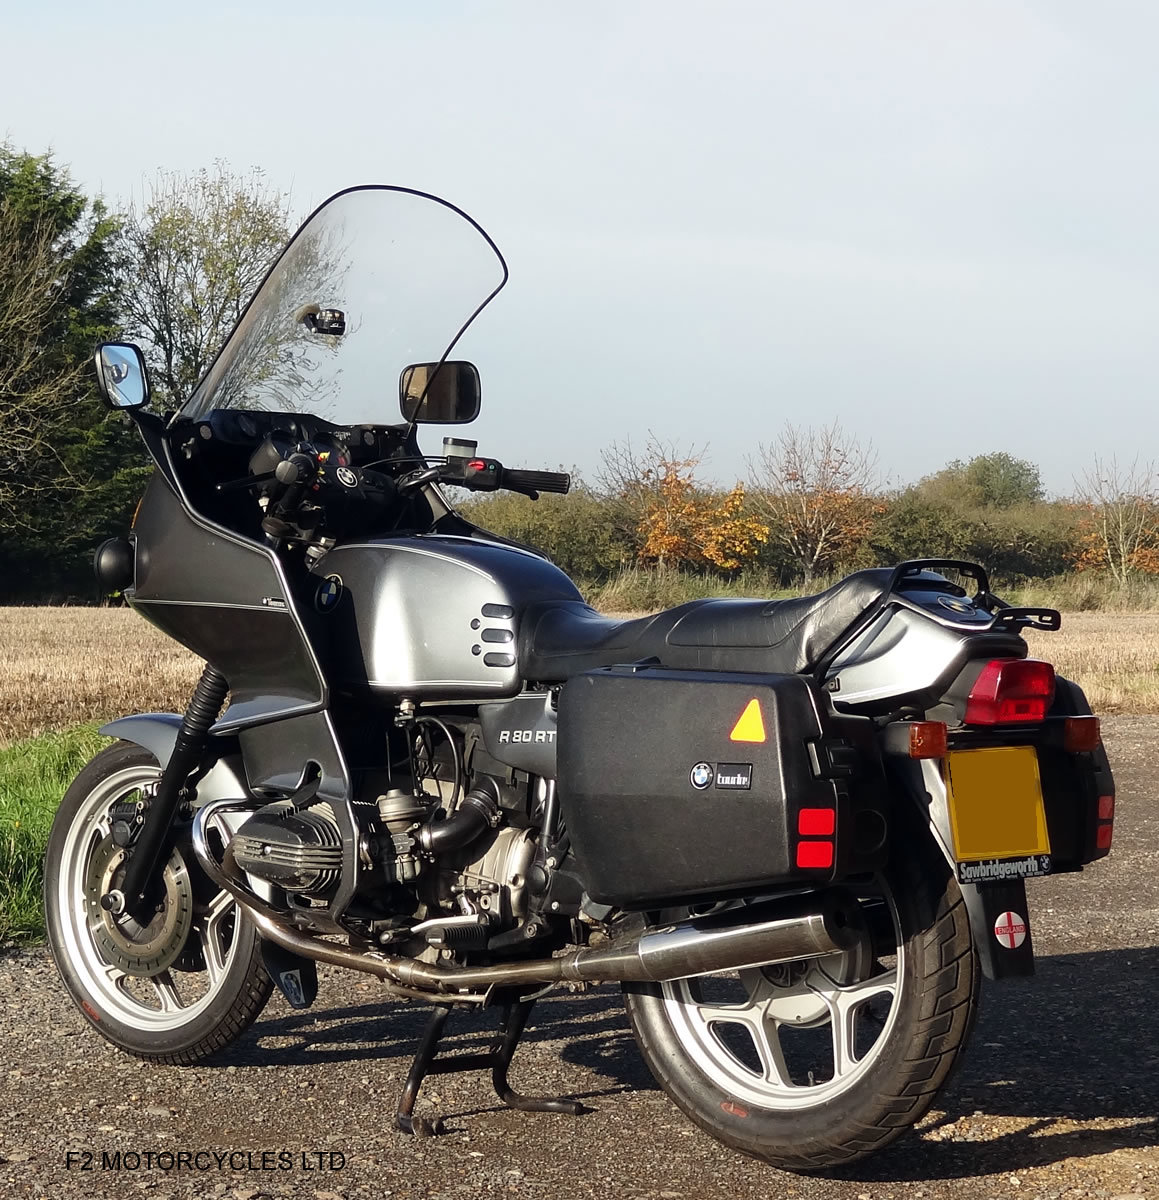 1989 BMW R80RT 1 owner, long MOT, serviced and ready to ride For Sale (picture 4 of 6)